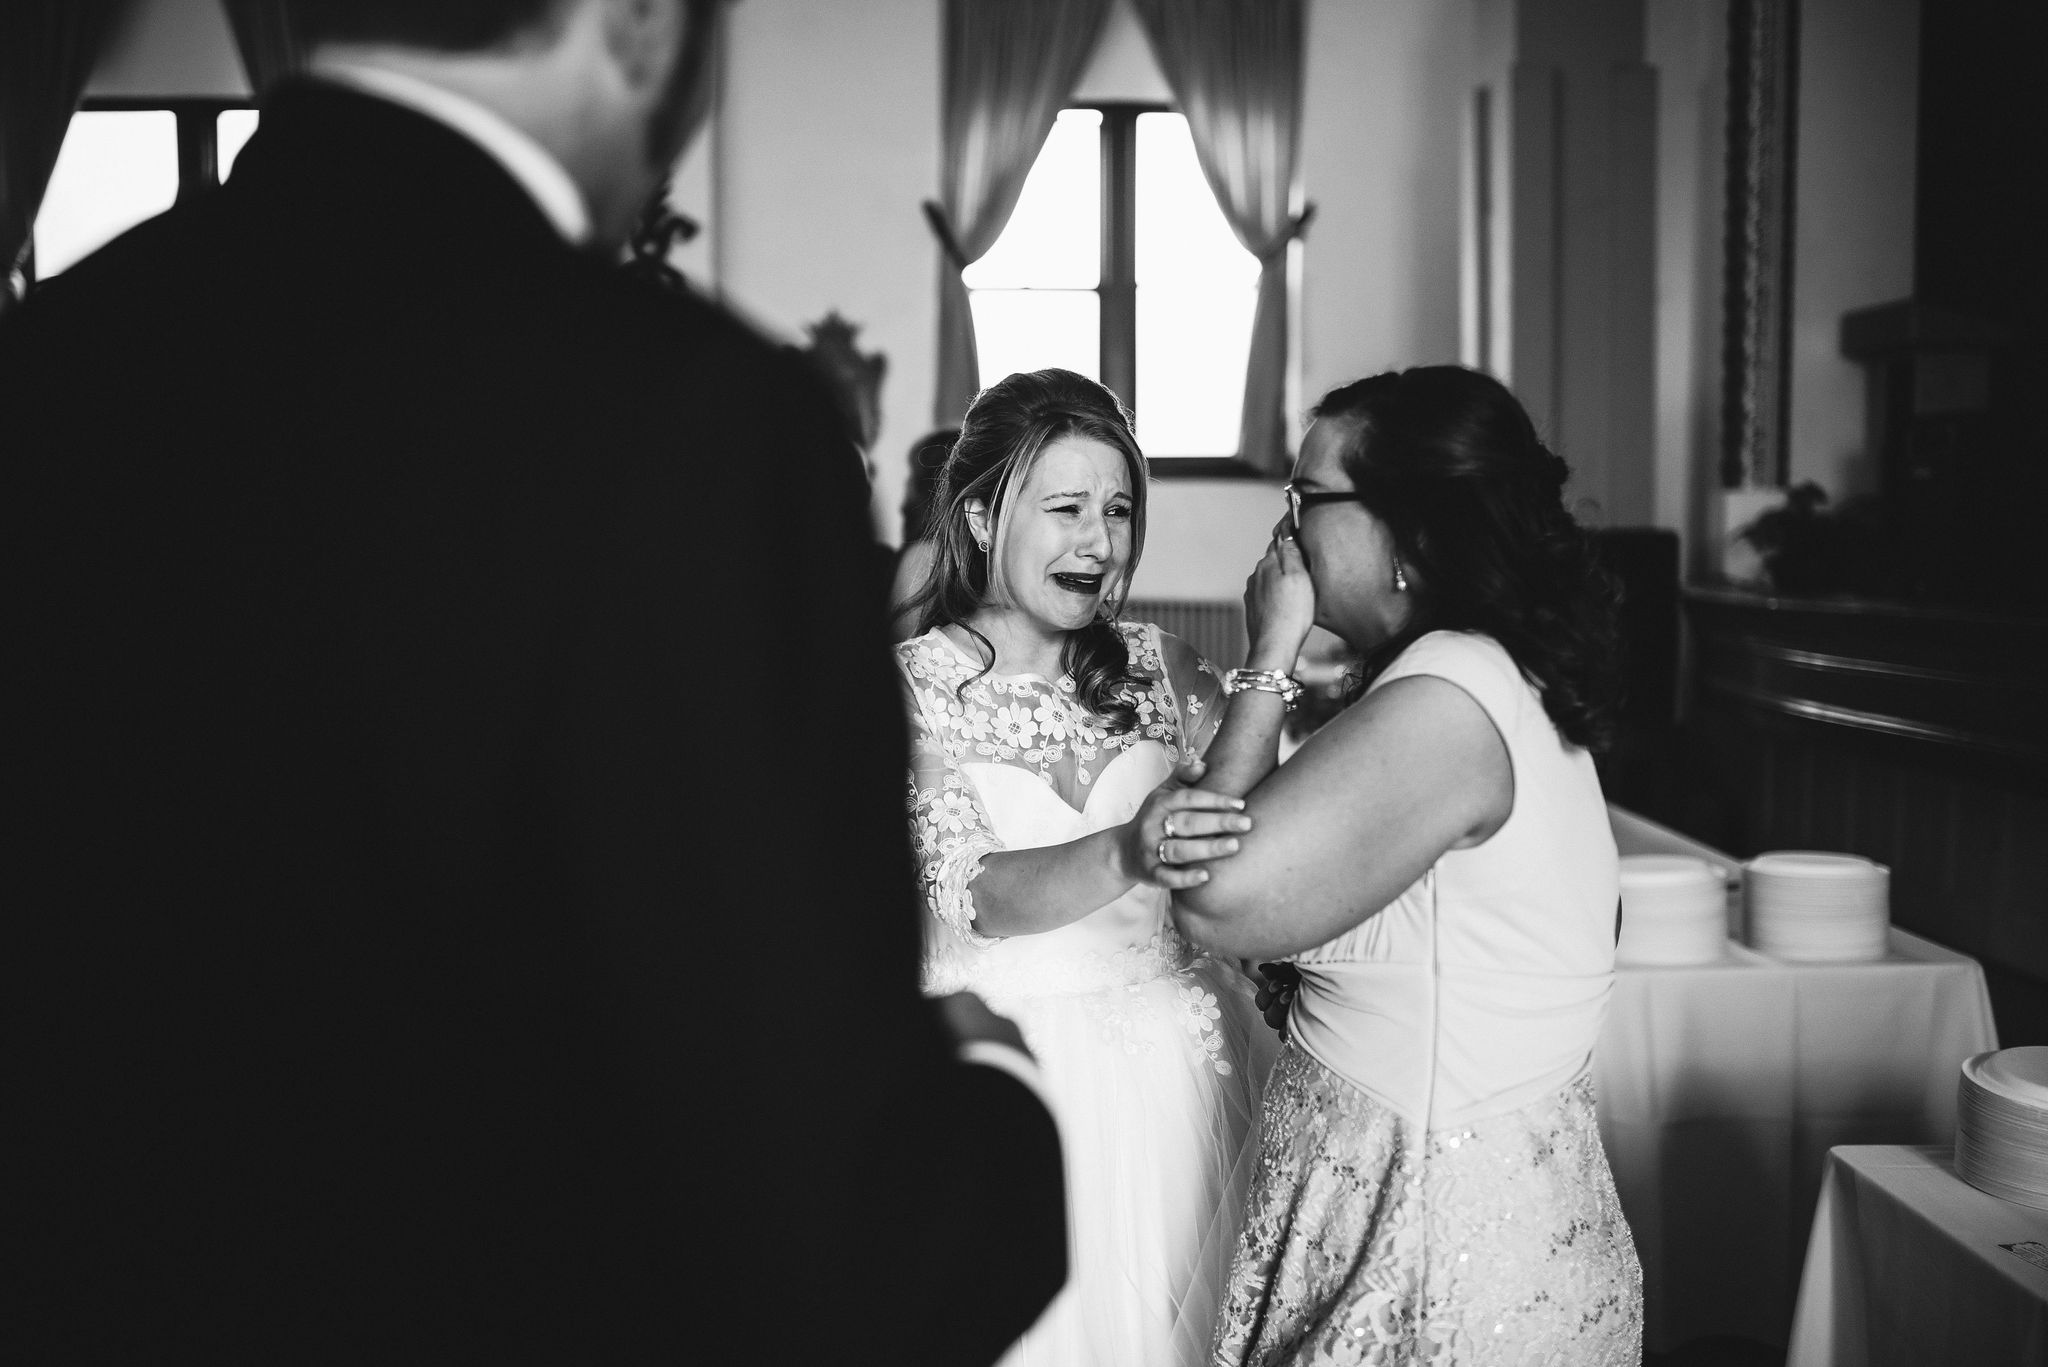 Baltimore, Lithuanian Dance Hall, Maryland Wedding Photographer, Vintage, Classic, 50s Style, Bride Laughing and Crying with Friends, Black and White Photo